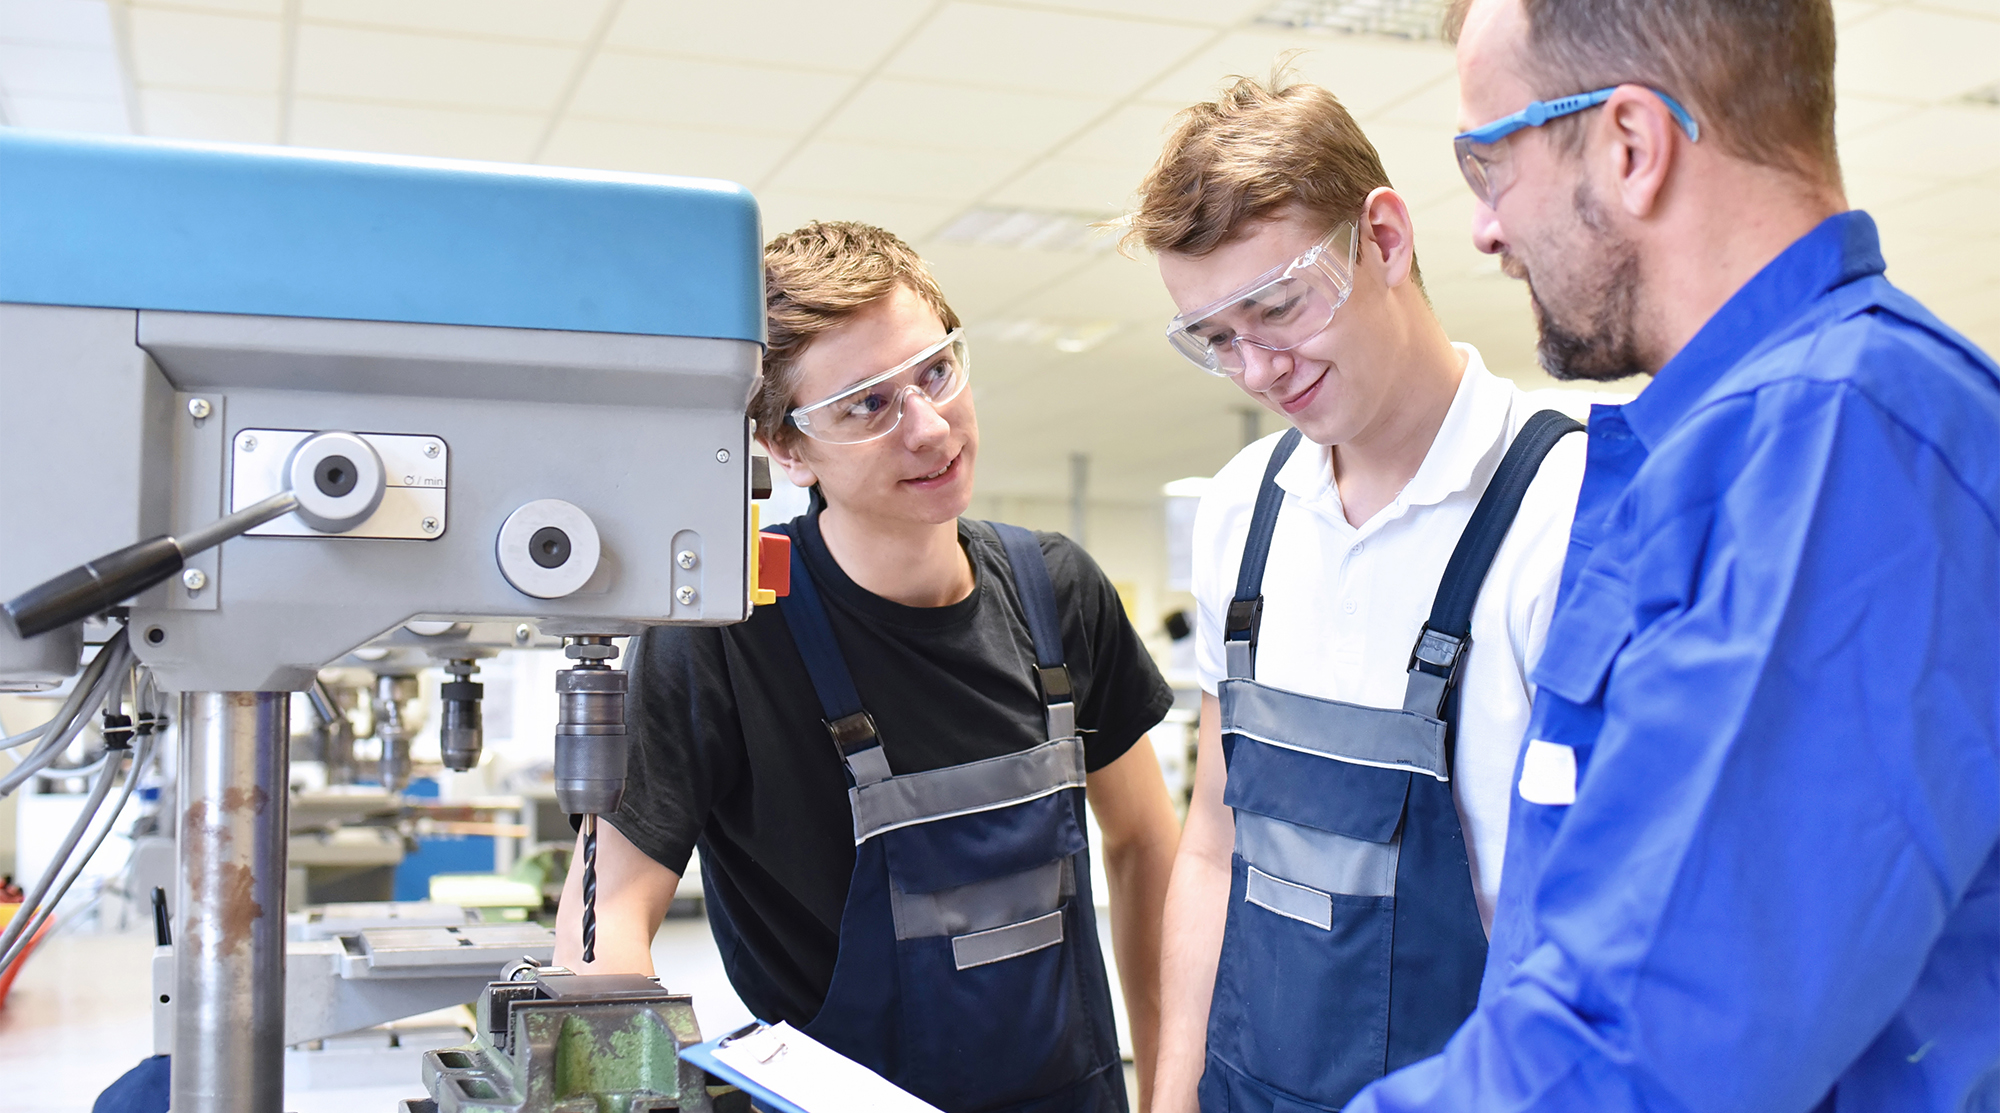 Trade industry appreciates doing on the job training education with mentor